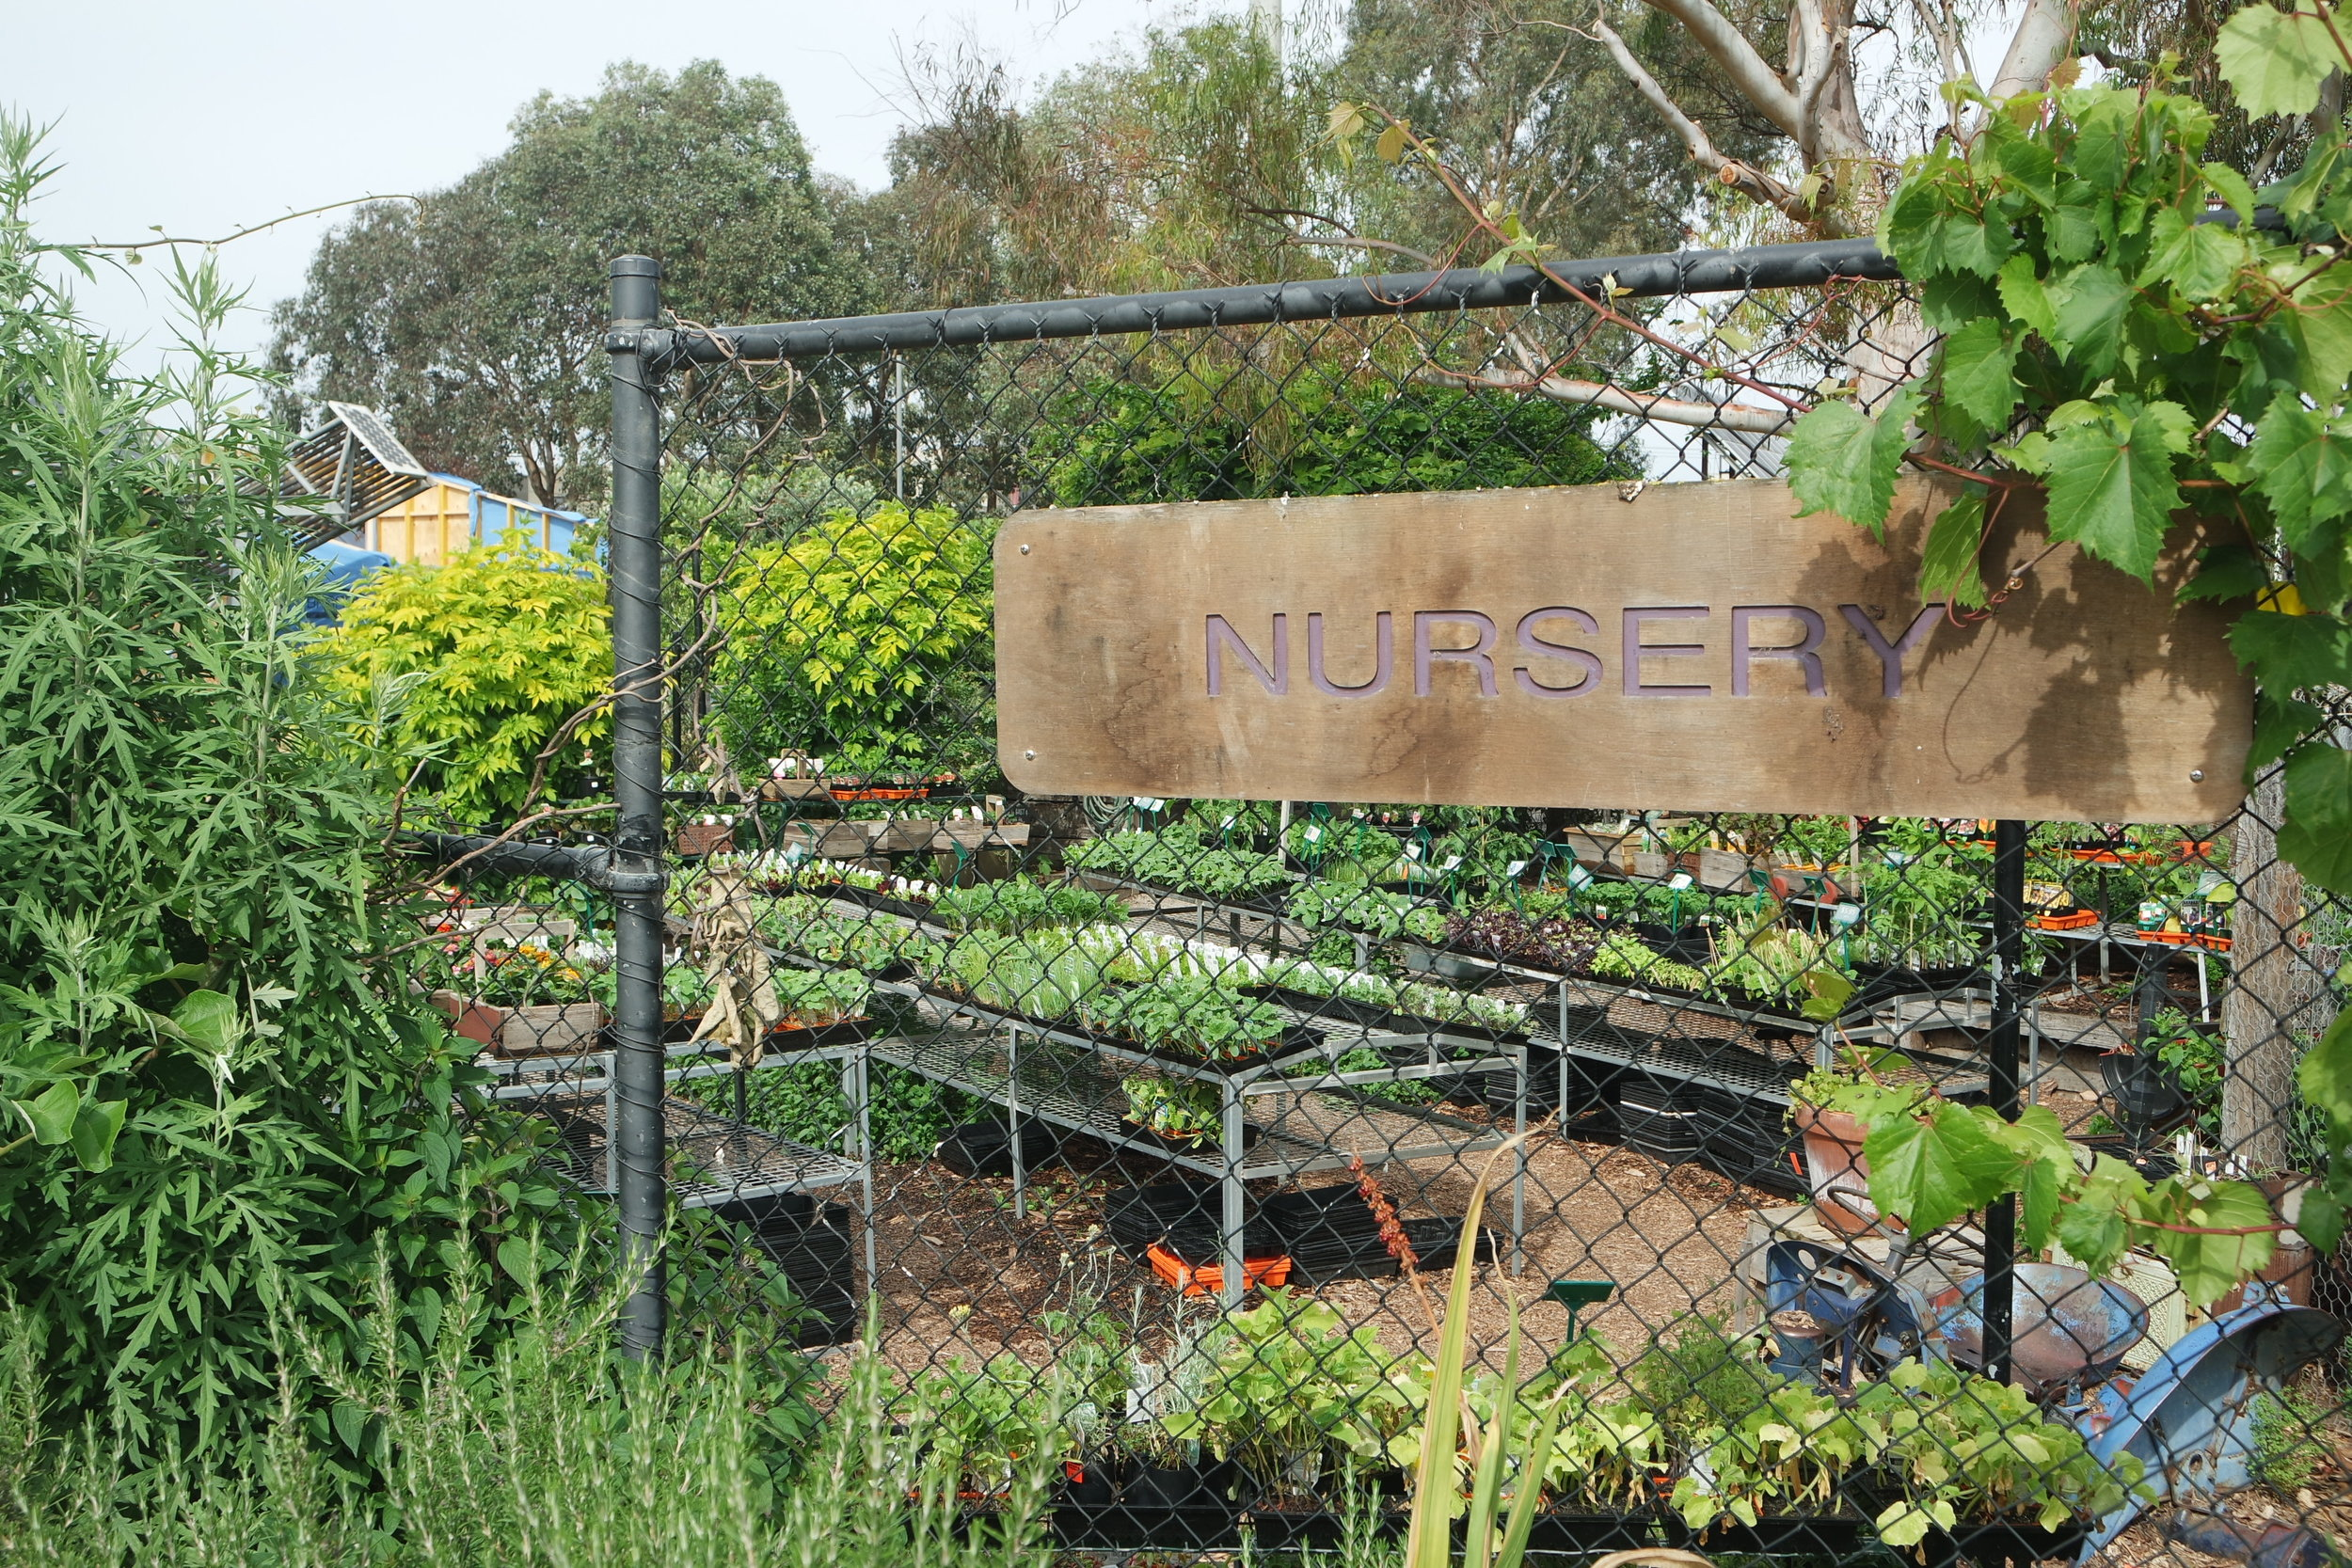 CERES is thinking global and planting local:native plants at CERES permaculture and bushfood nursery.